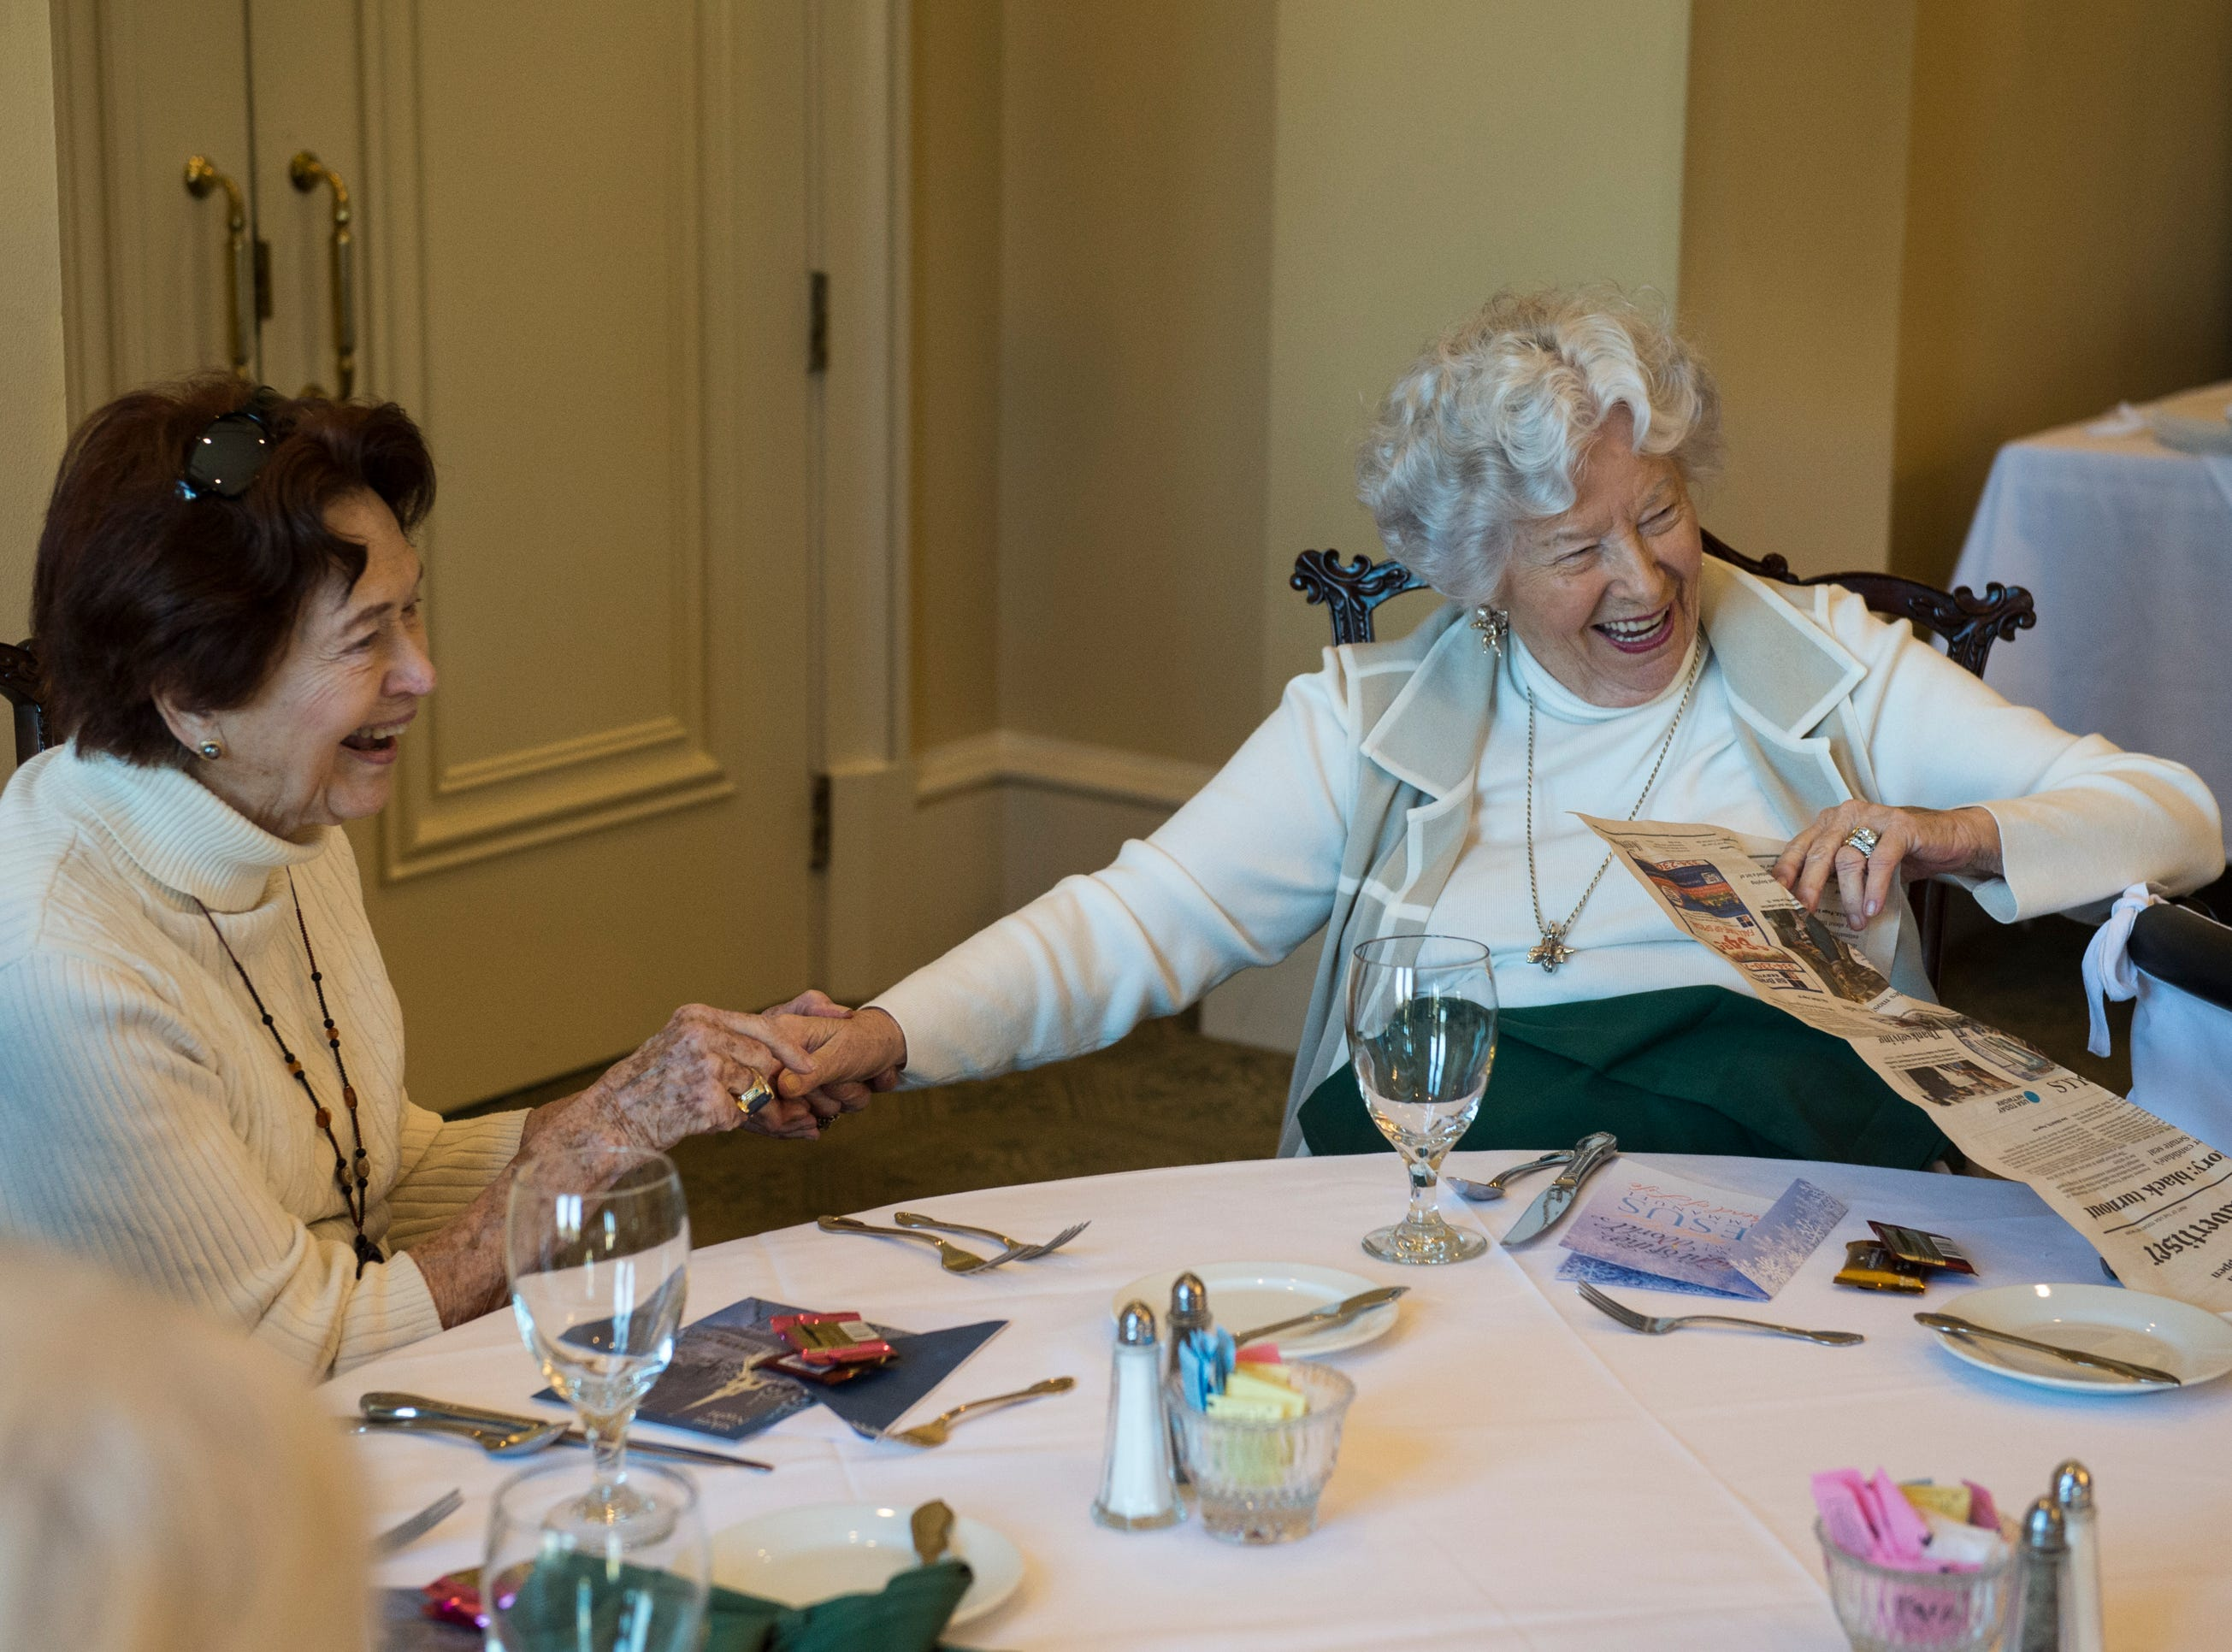 Peggy Joseph, left, and Maureen Parks chat with friends during lunch at Montgomery Country Club in Montgomery, Ala., on Wednesday, Dec. 5, 2018.